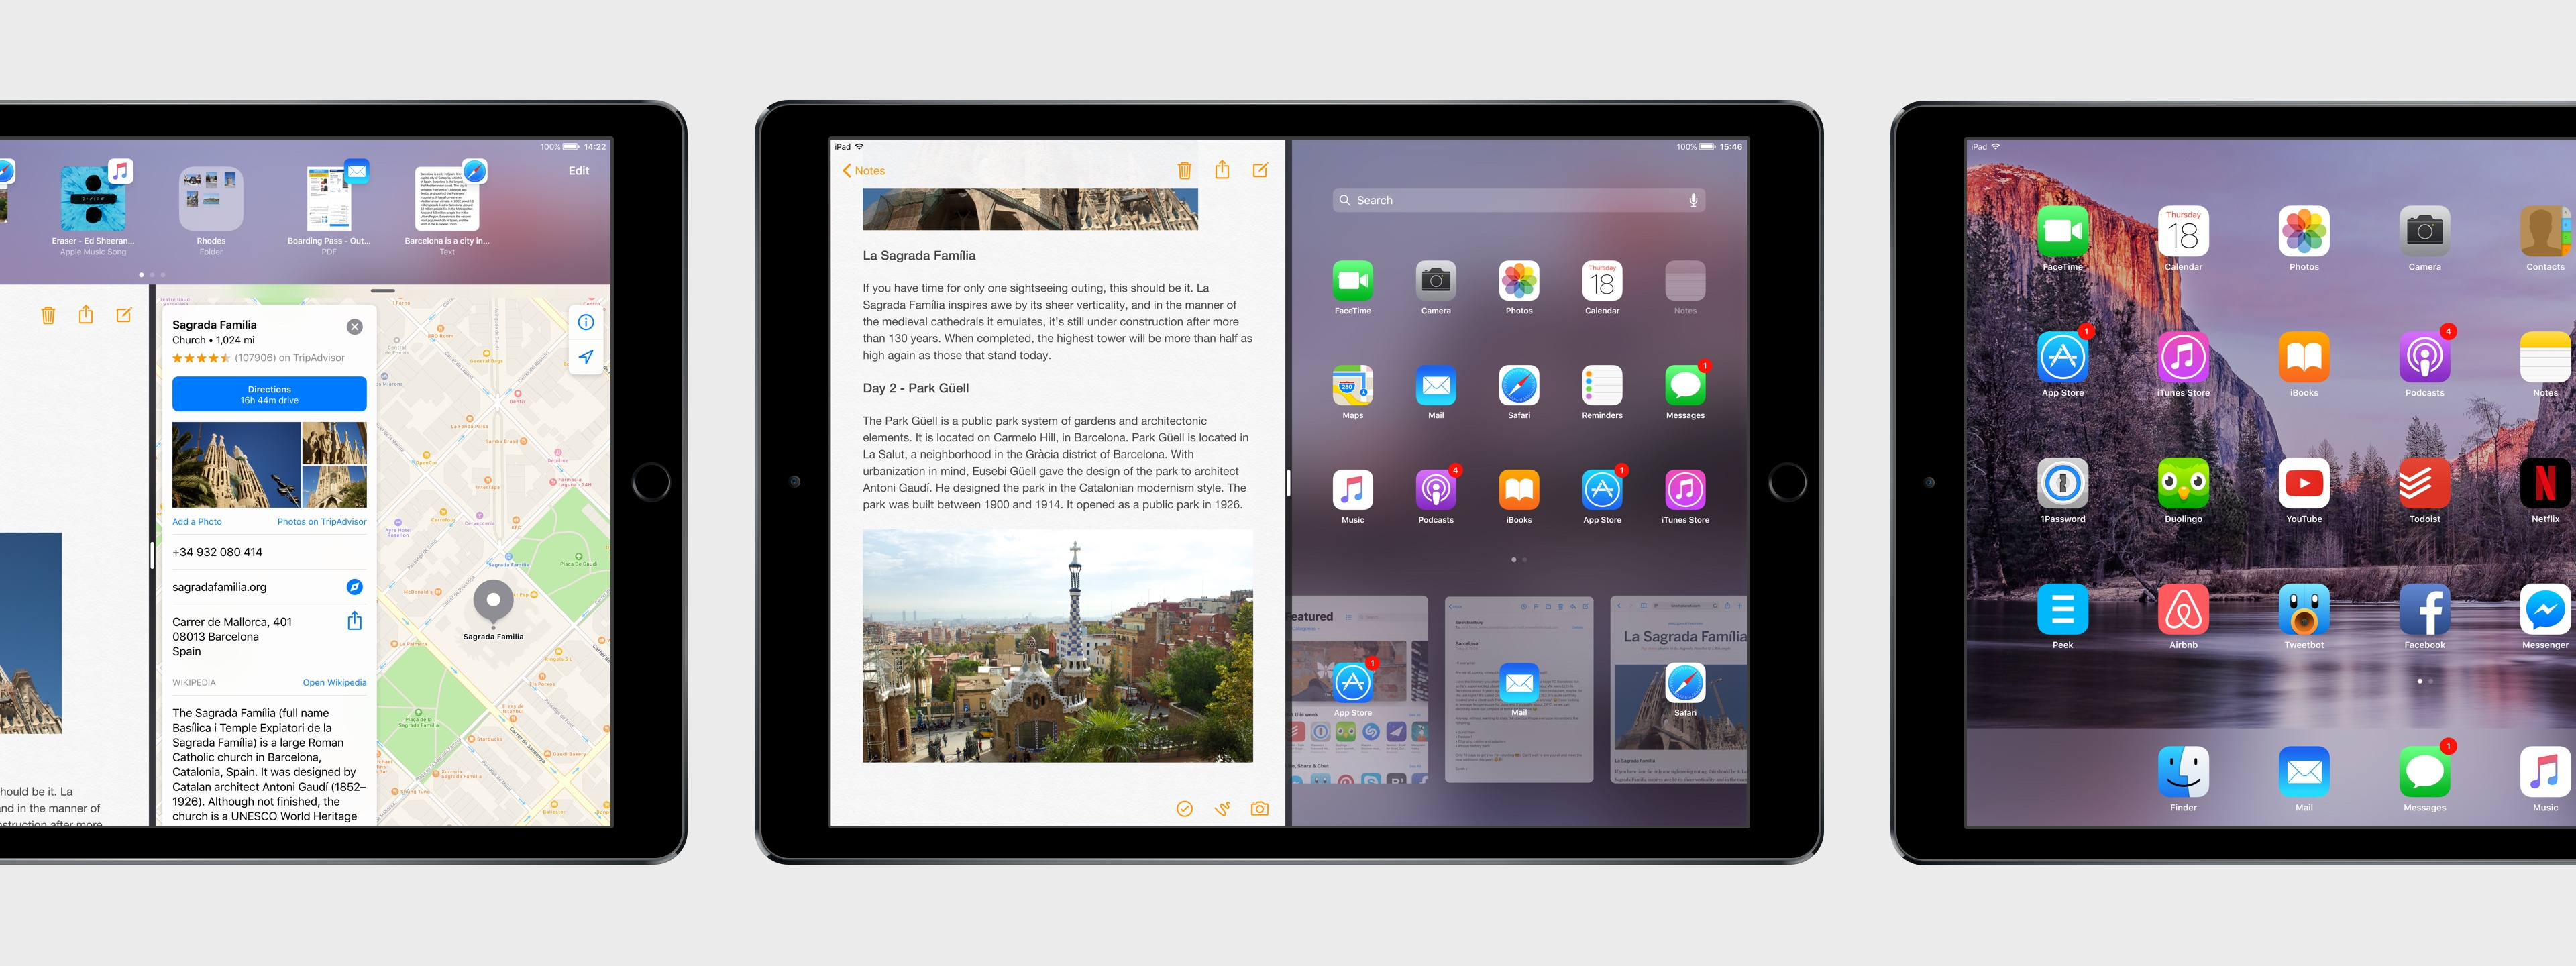 photo image iOS 11: iPad Wishes and Concept Video